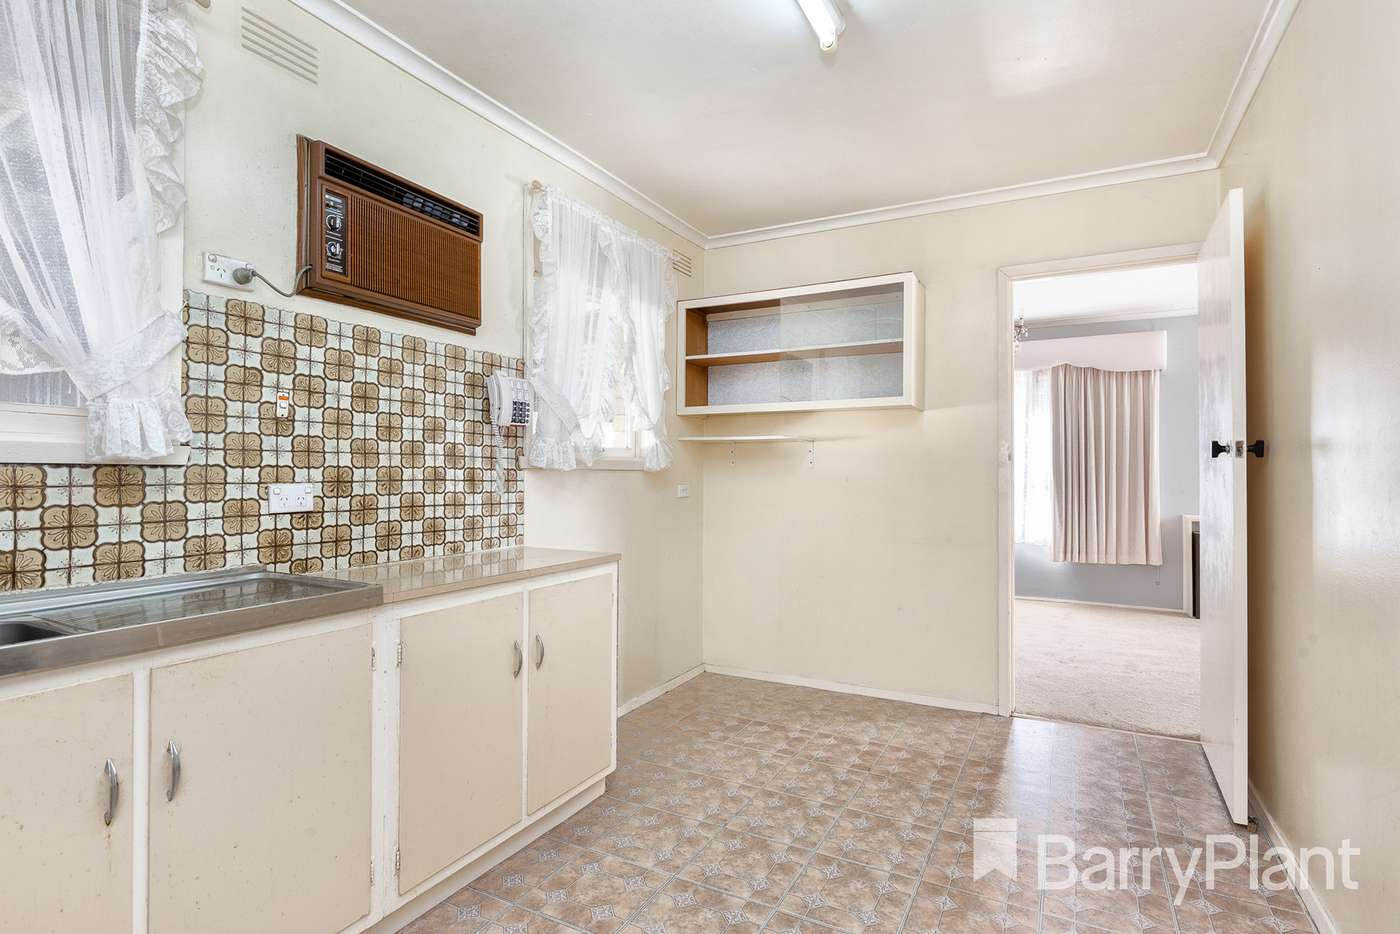 Sixth view of Homely house listing, 8 Putt Grove, Keysborough VIC 3173